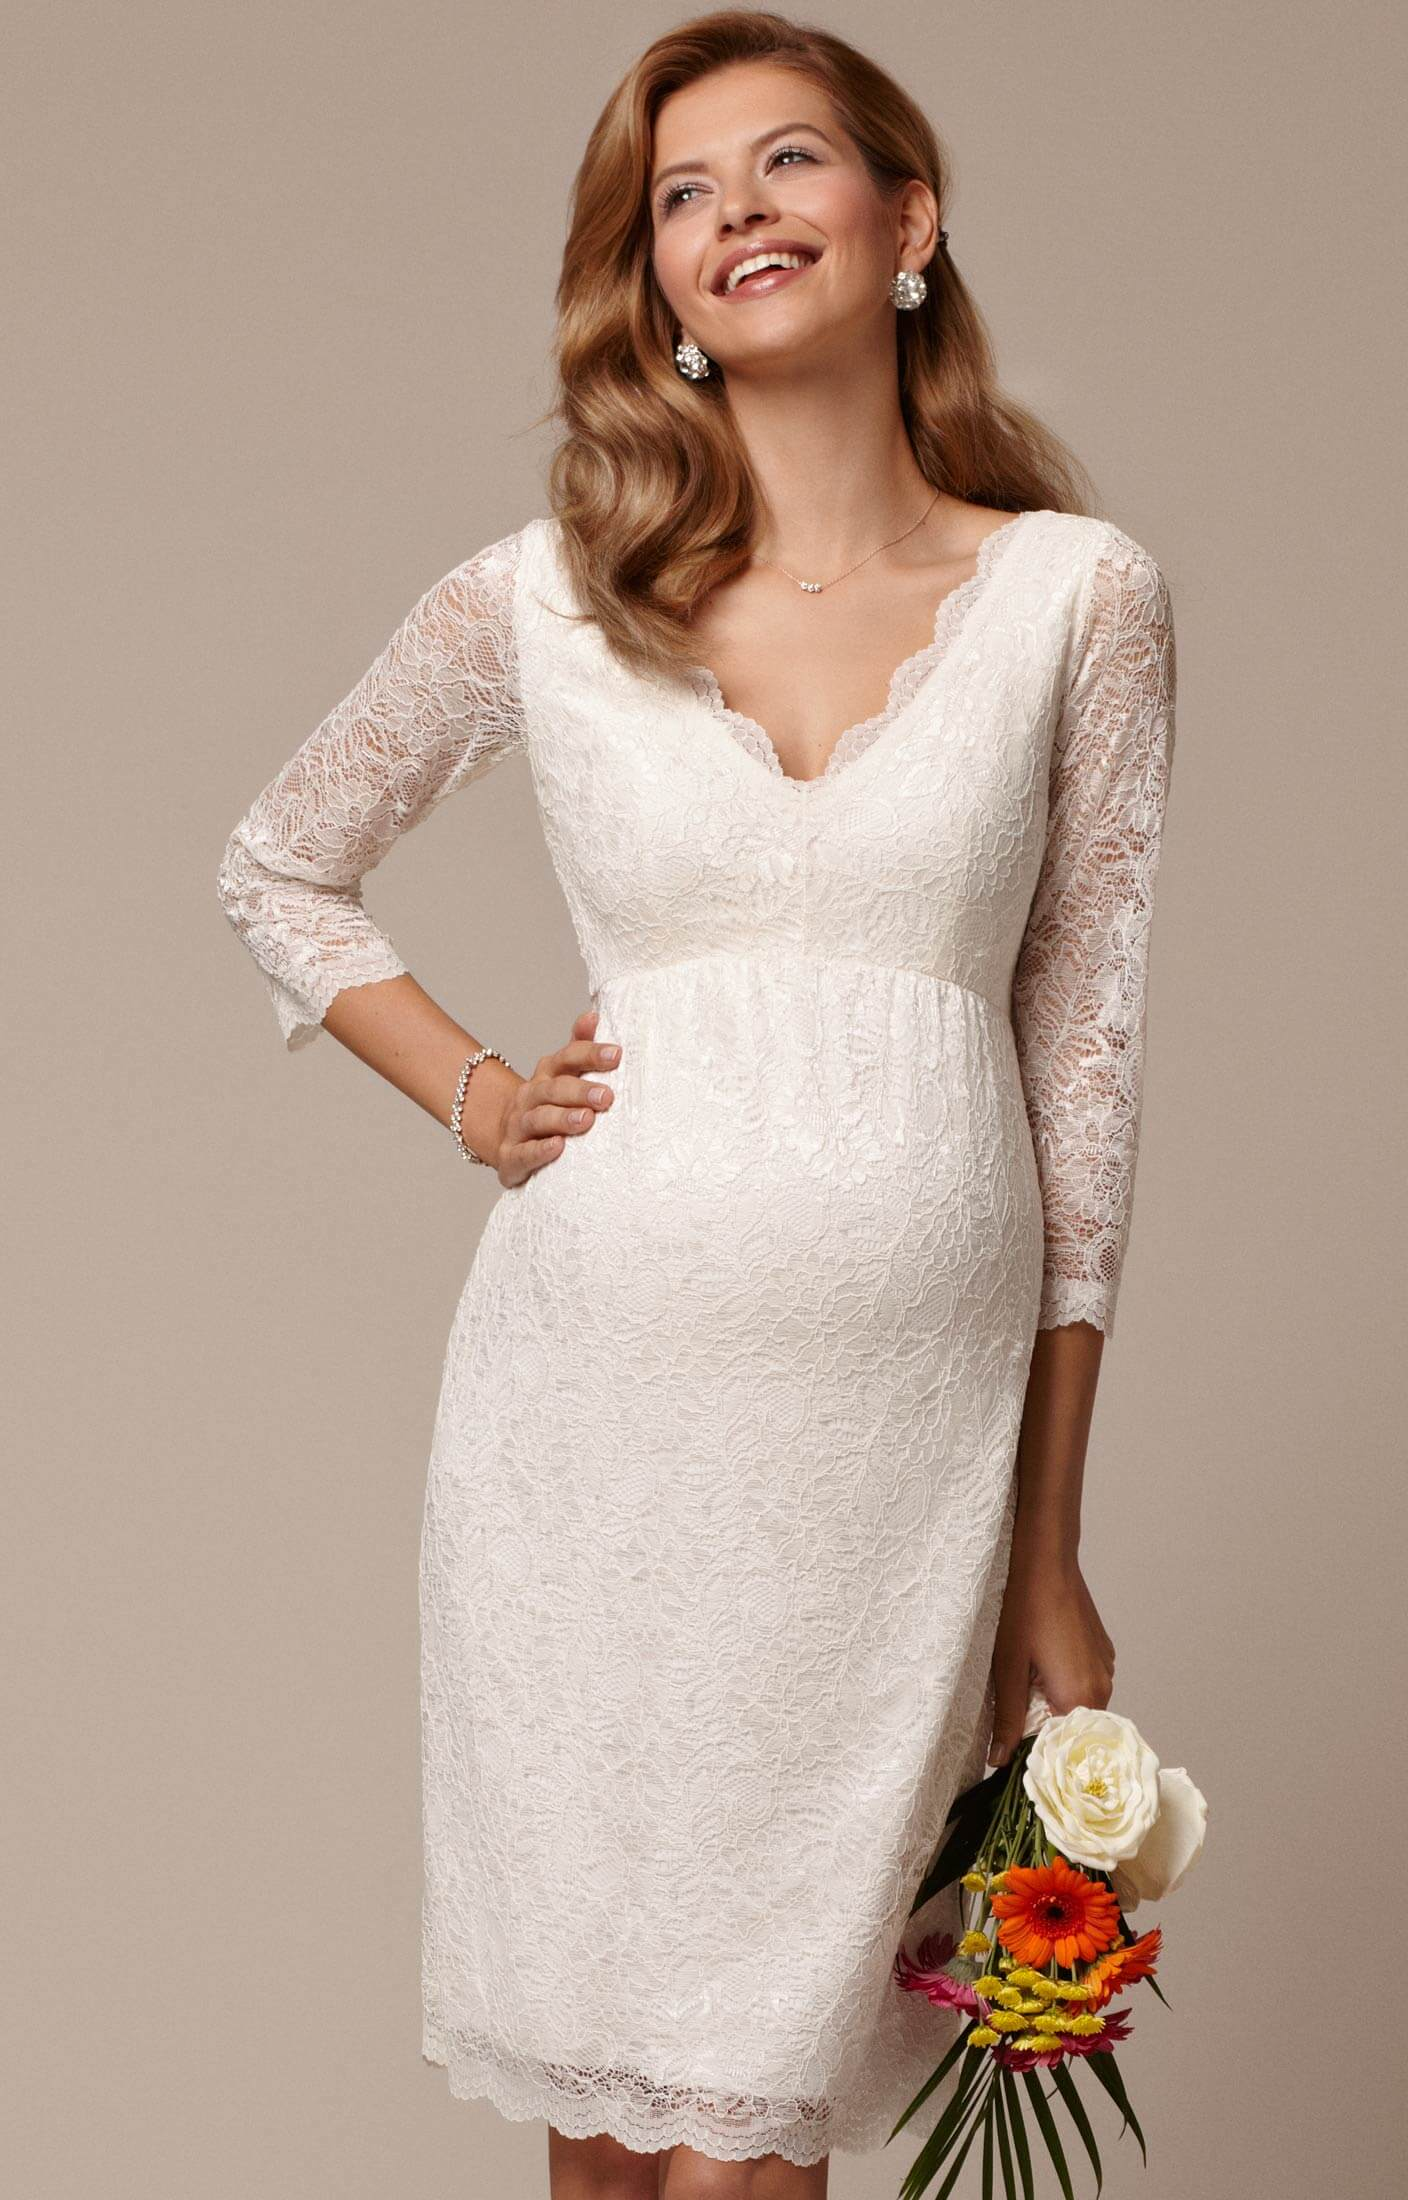 Chloe Lace Maternity Wedding Dress (Ivory) short maternity wedding dresses Chloe Lace Maternity Wedding Dress Ivory Maternity Wedding Dresses Evening Wear and Party Clothes by Tiffany Rose